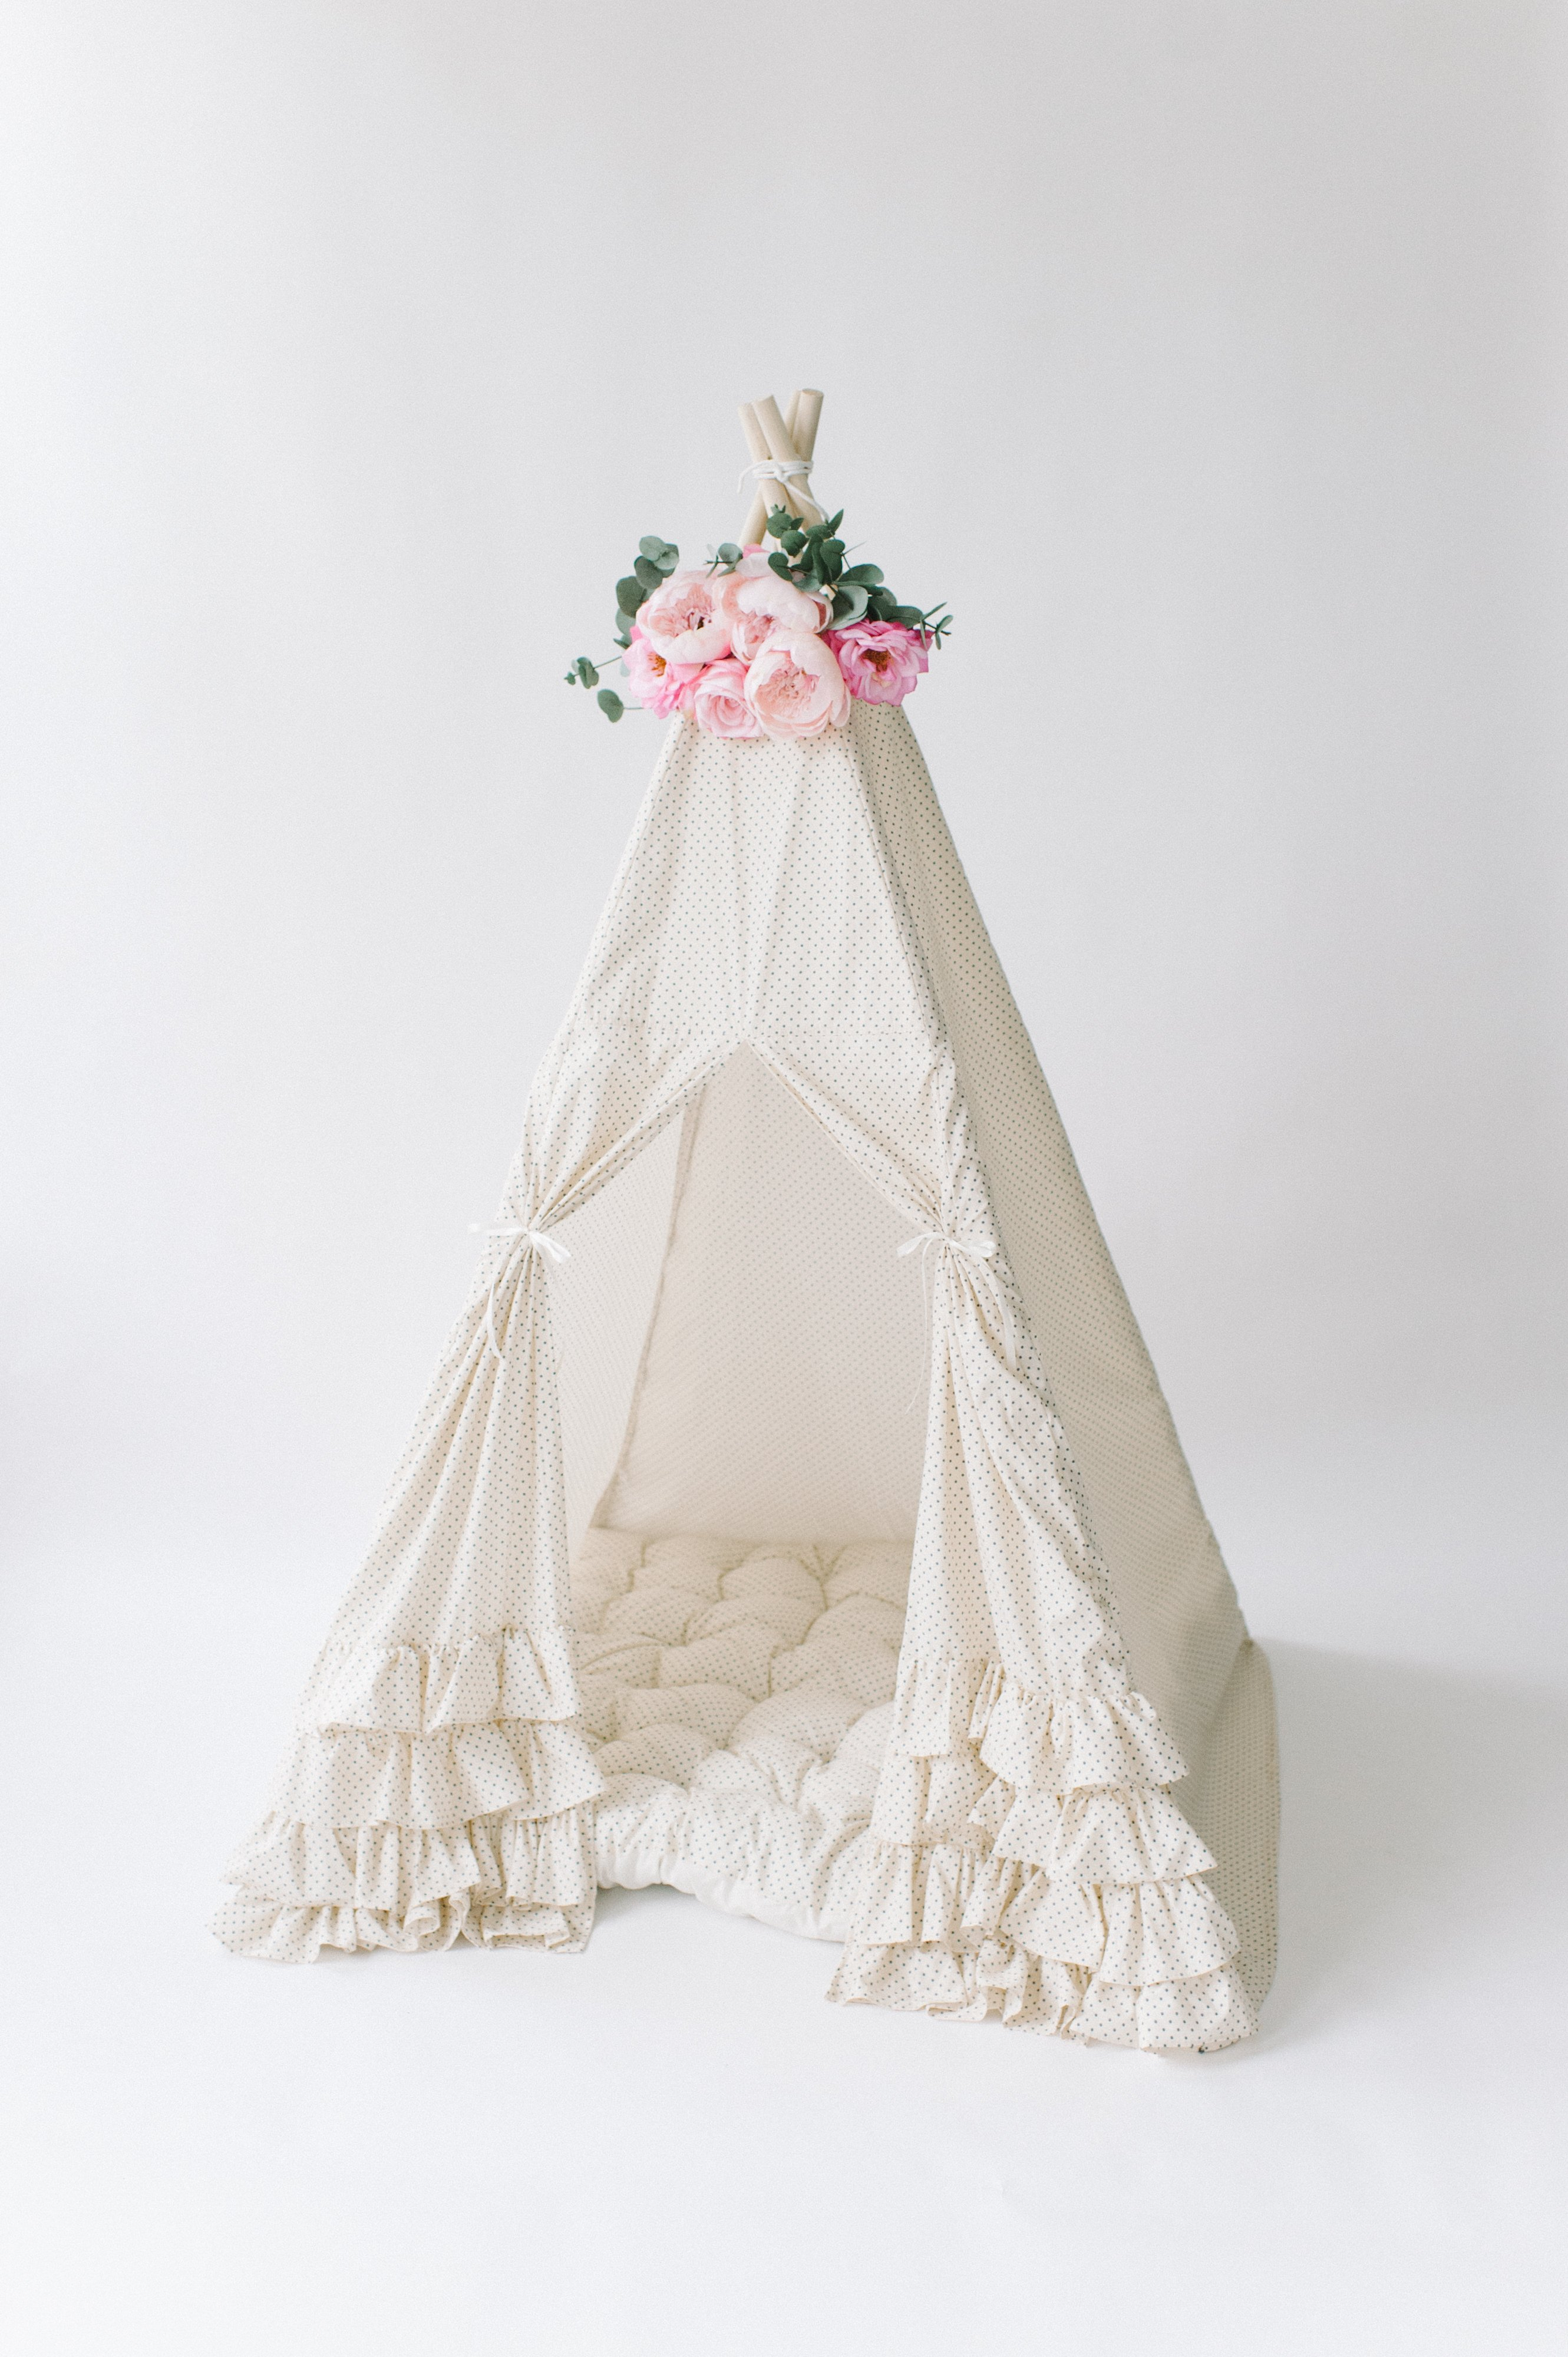 The Colette Teepee In 2019 | Playroom: Kids Teepees And Play Tents